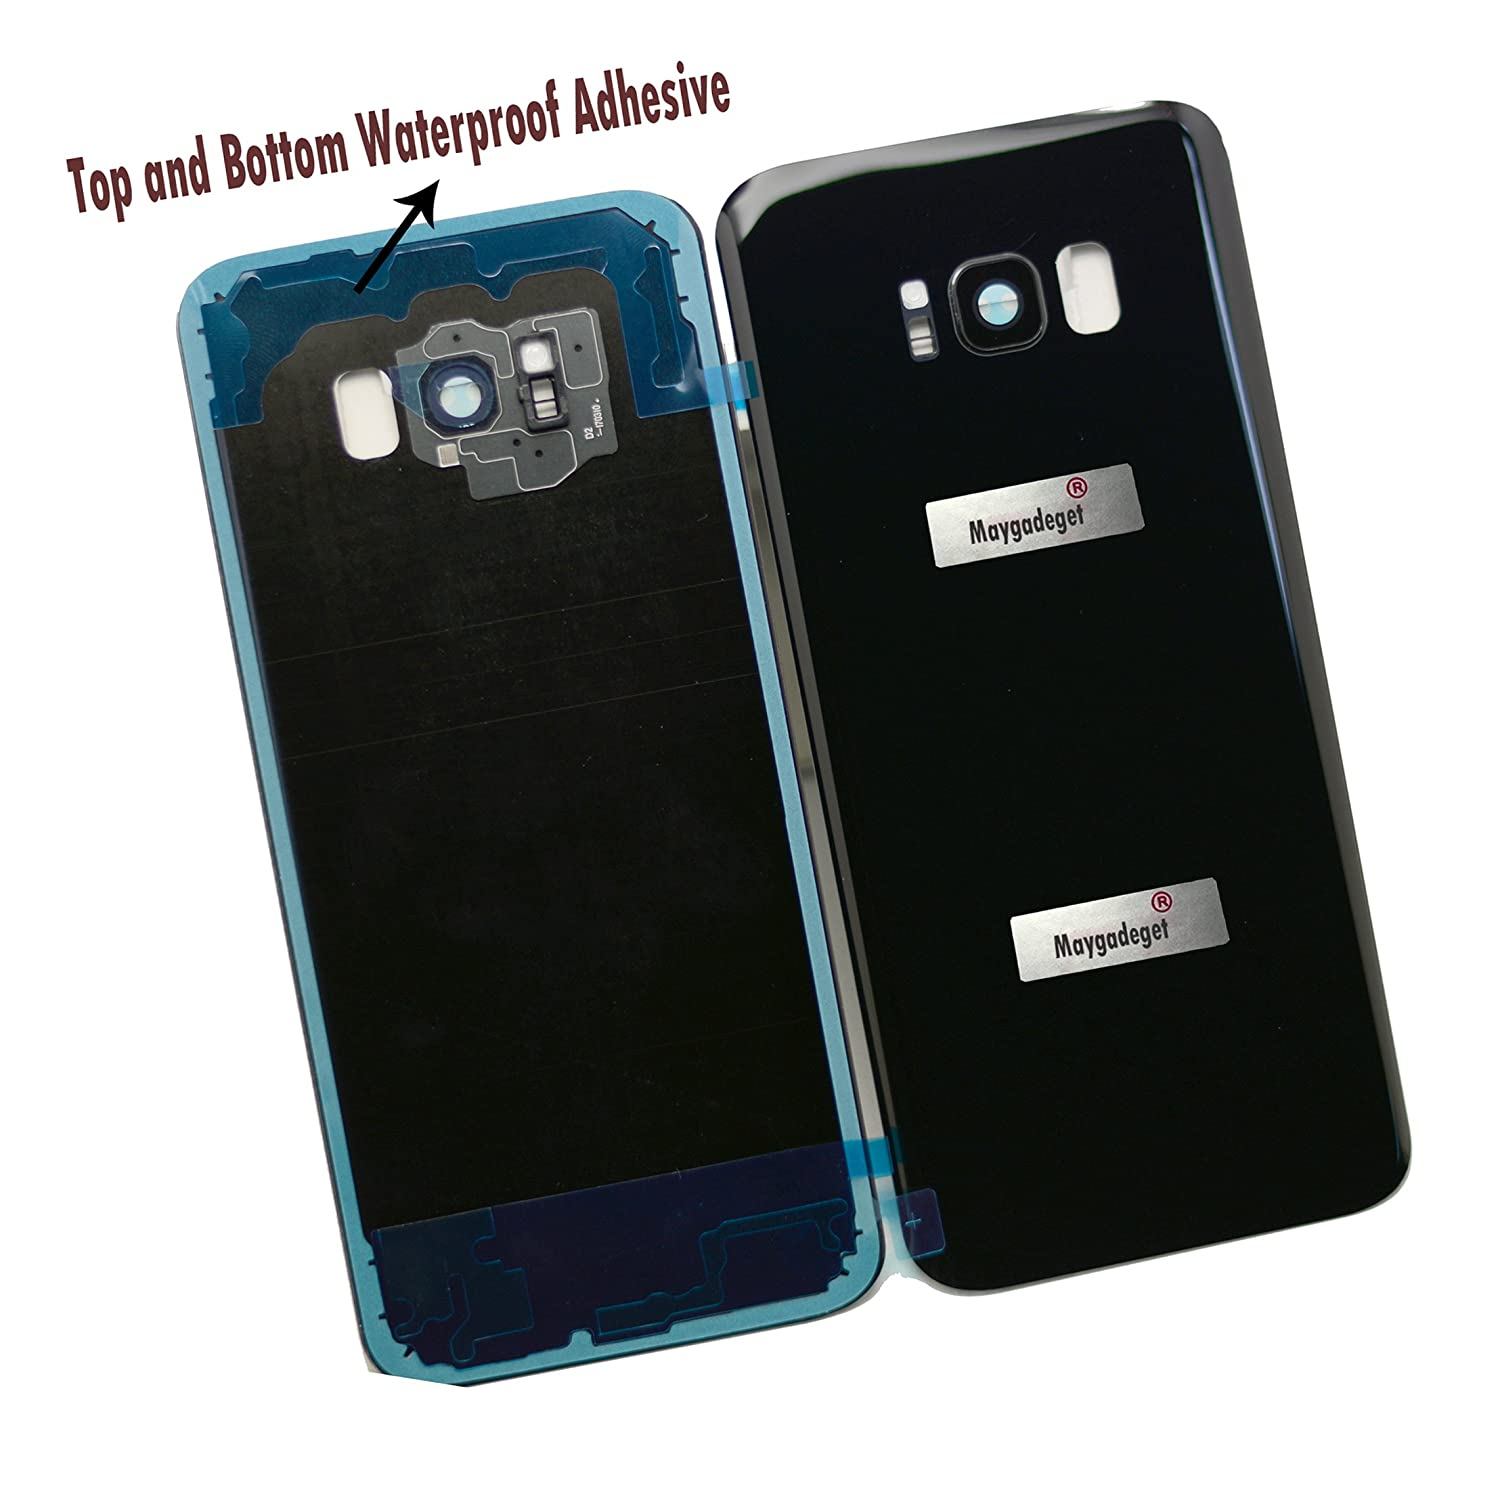 size 40 f3e86 9ec0c New Maygadget For Samsung Galaxy S8 Plus 6.2 G955 Rear Panel True Glass  Back Cover Housing Replacement W/Waterproof Adhesive,Rear Camera Cover ...